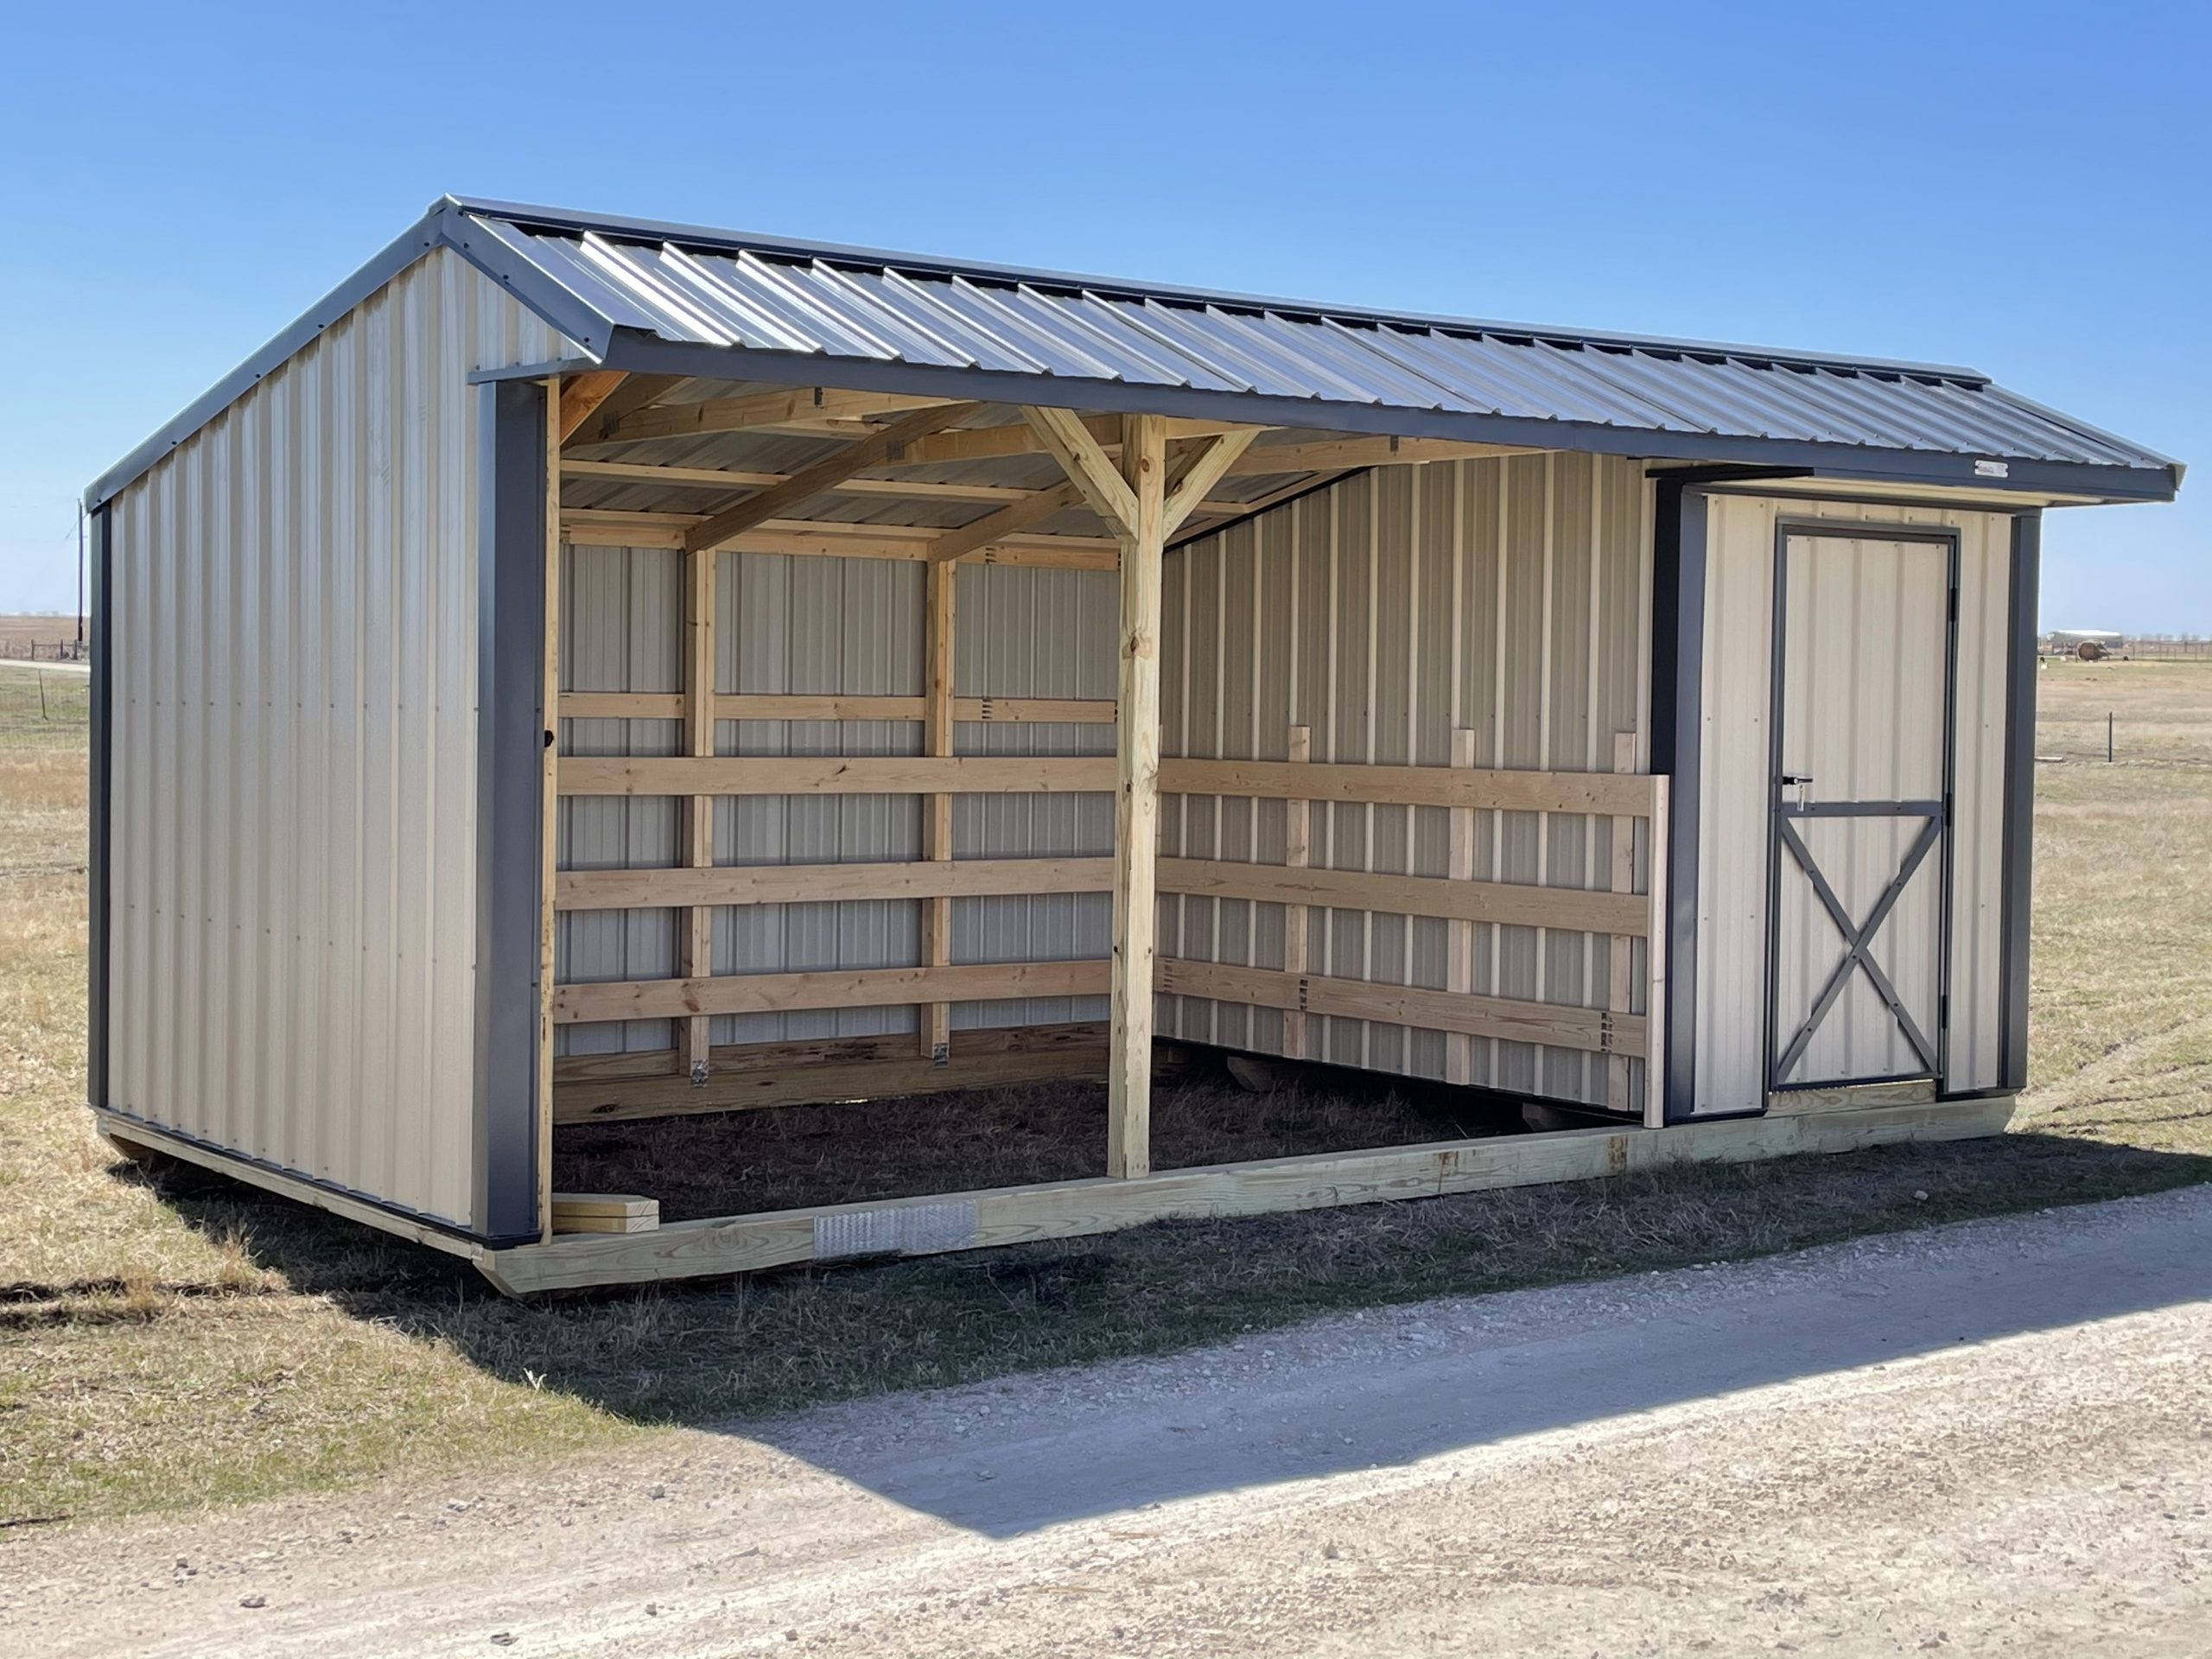 10x20 Metal Run-in Shed w/Tack Room #1872 Image